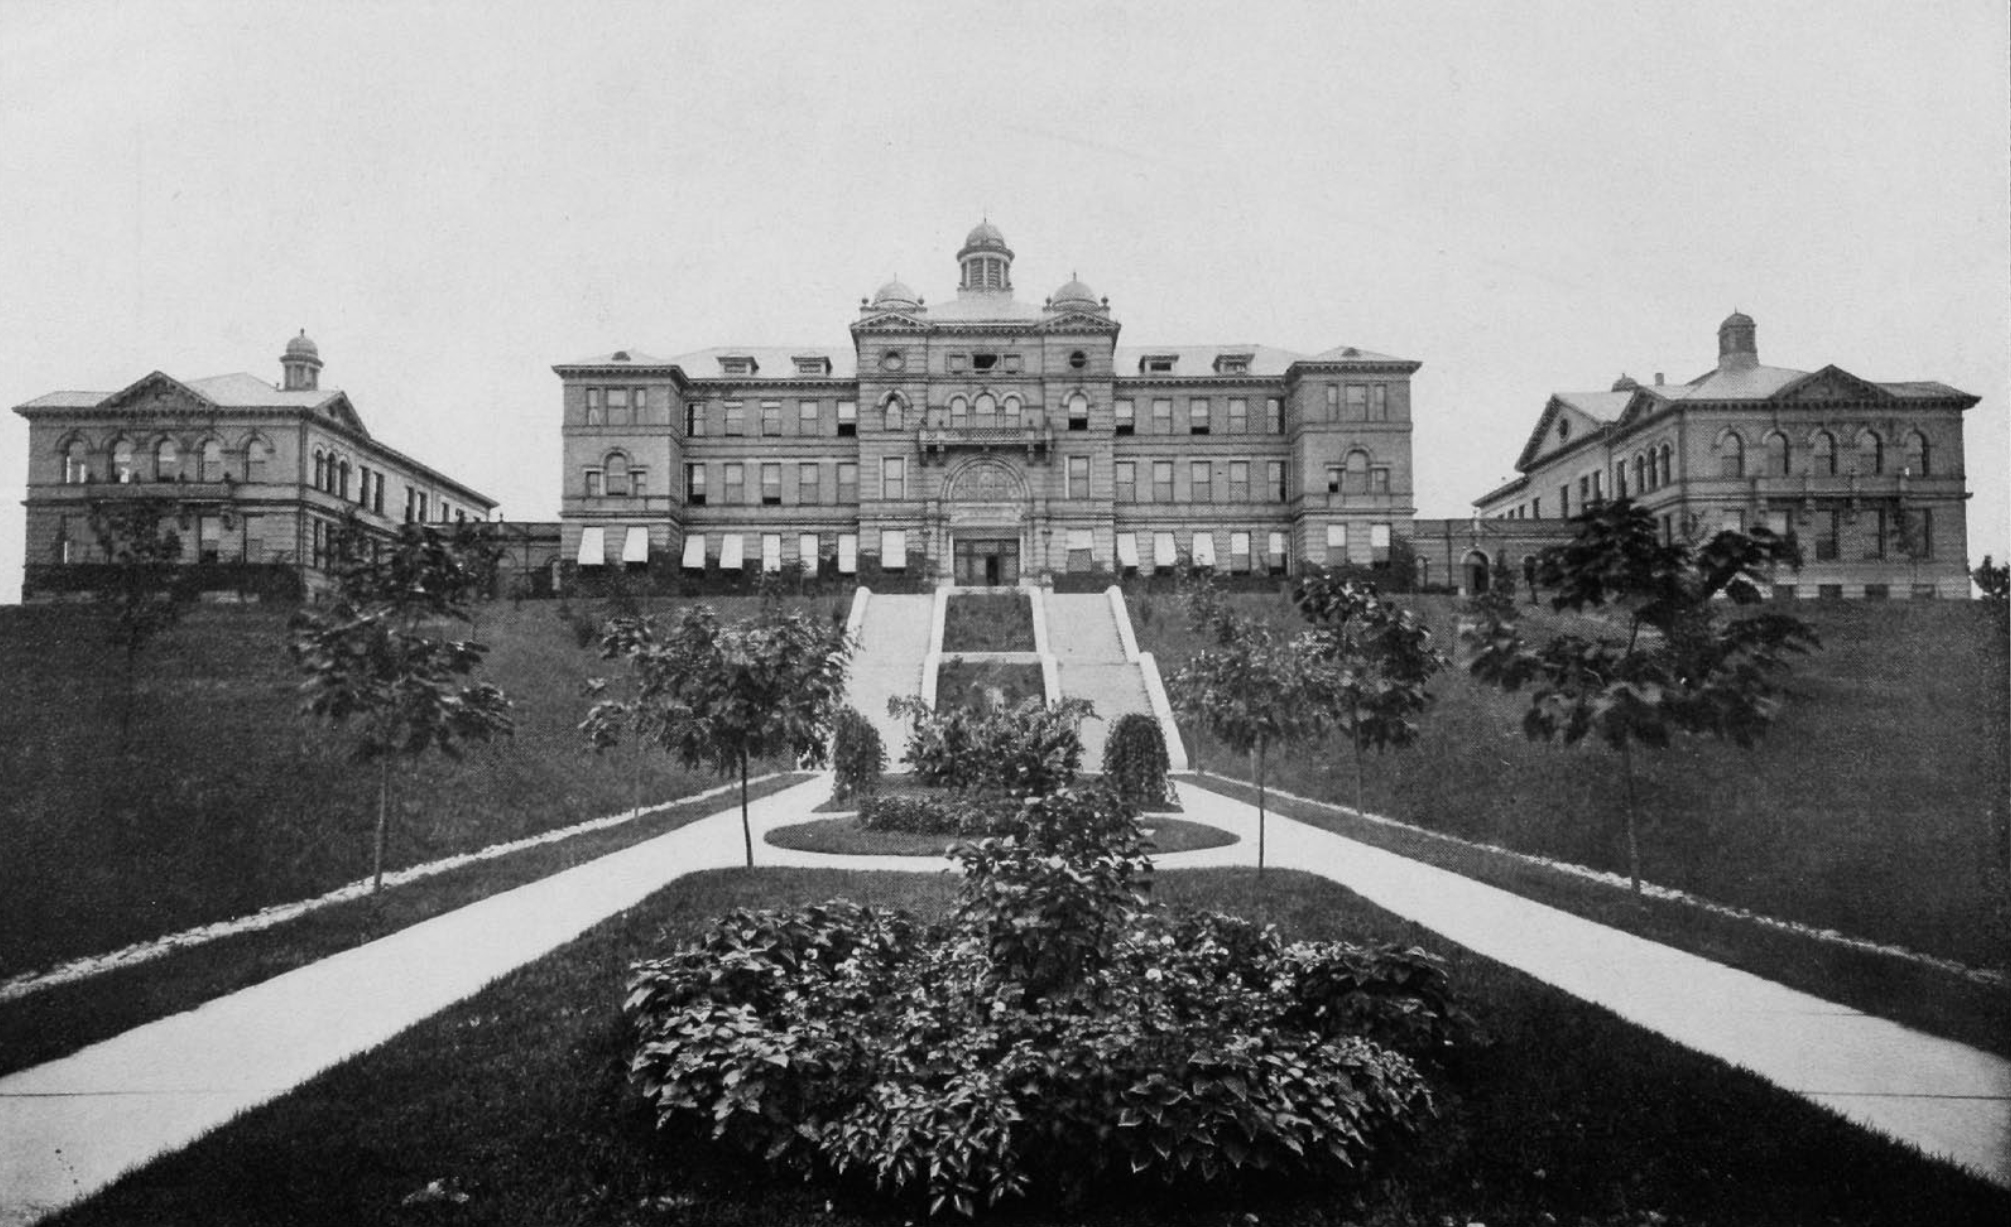 The original McMicken Hall [uc.edu]